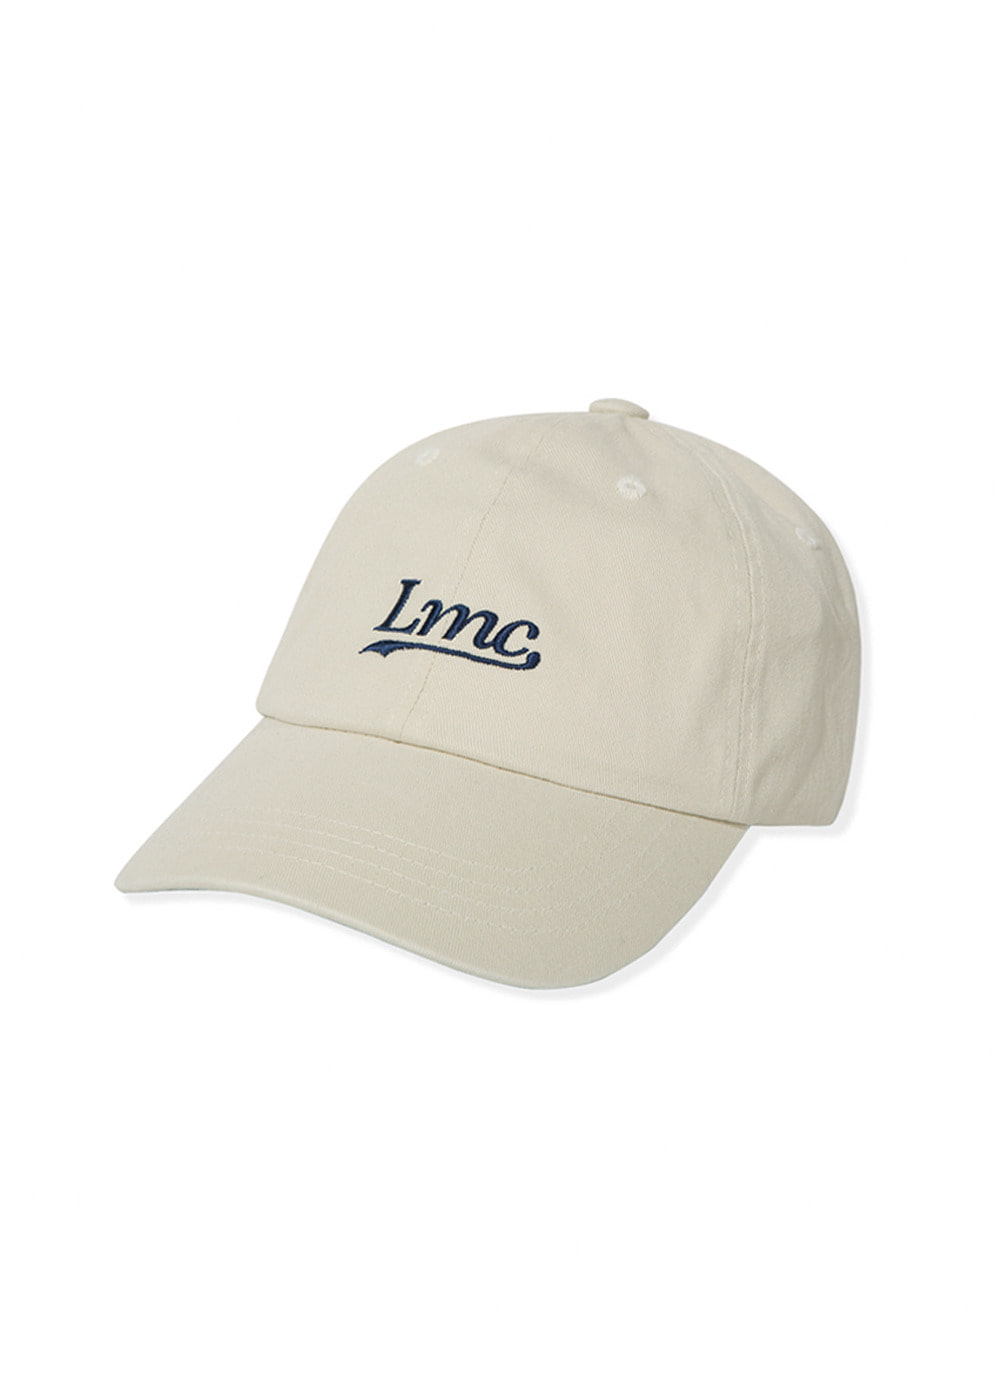 LMC CLASSIC WASHED 6 PANEL CAP ivory